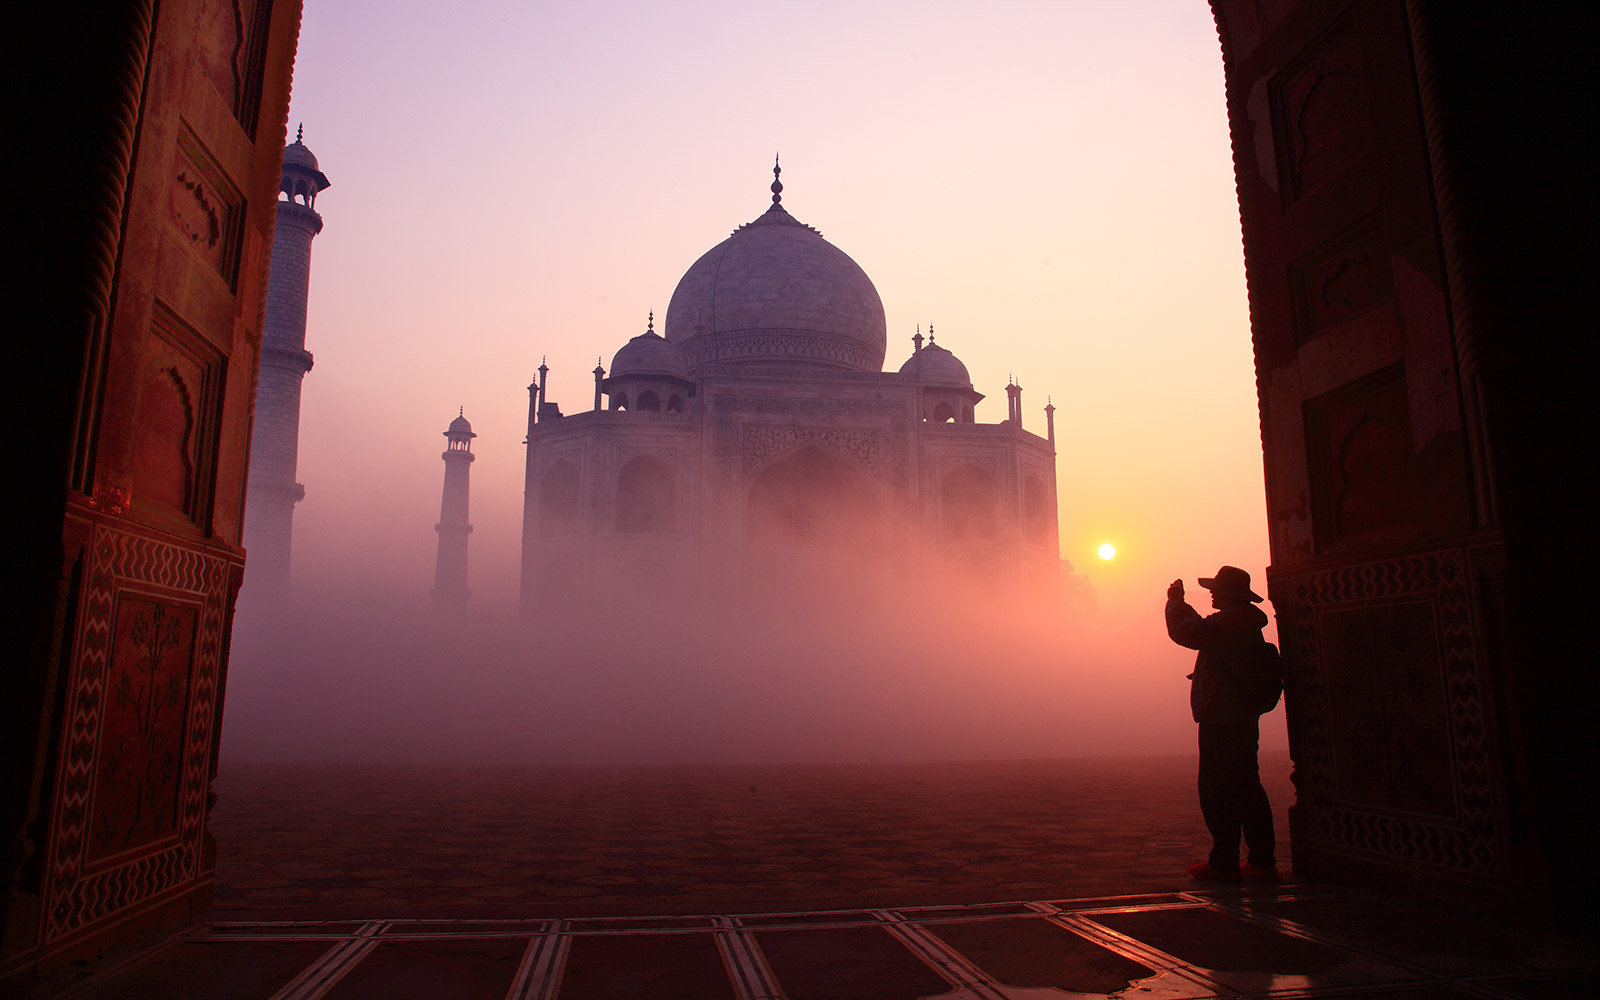 7. Check Out the Taj Mahal in India